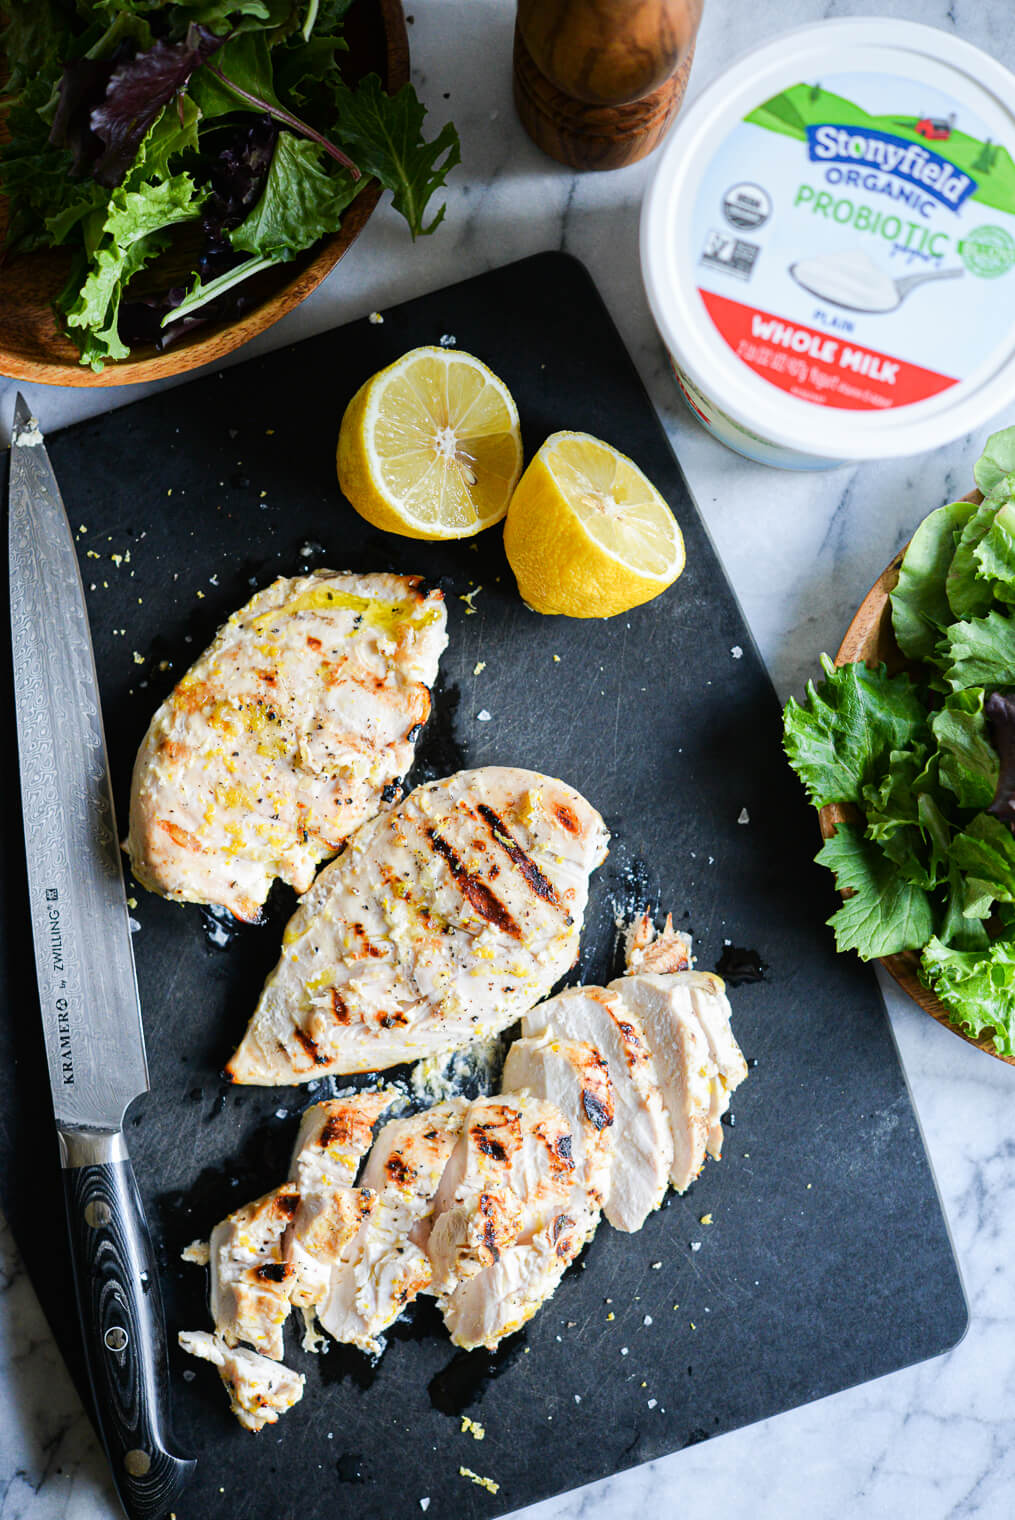 three lemon pepper yogurt grilled chicken breasts on a black cutting board next to a tub of plain yogurt and a halved lemon